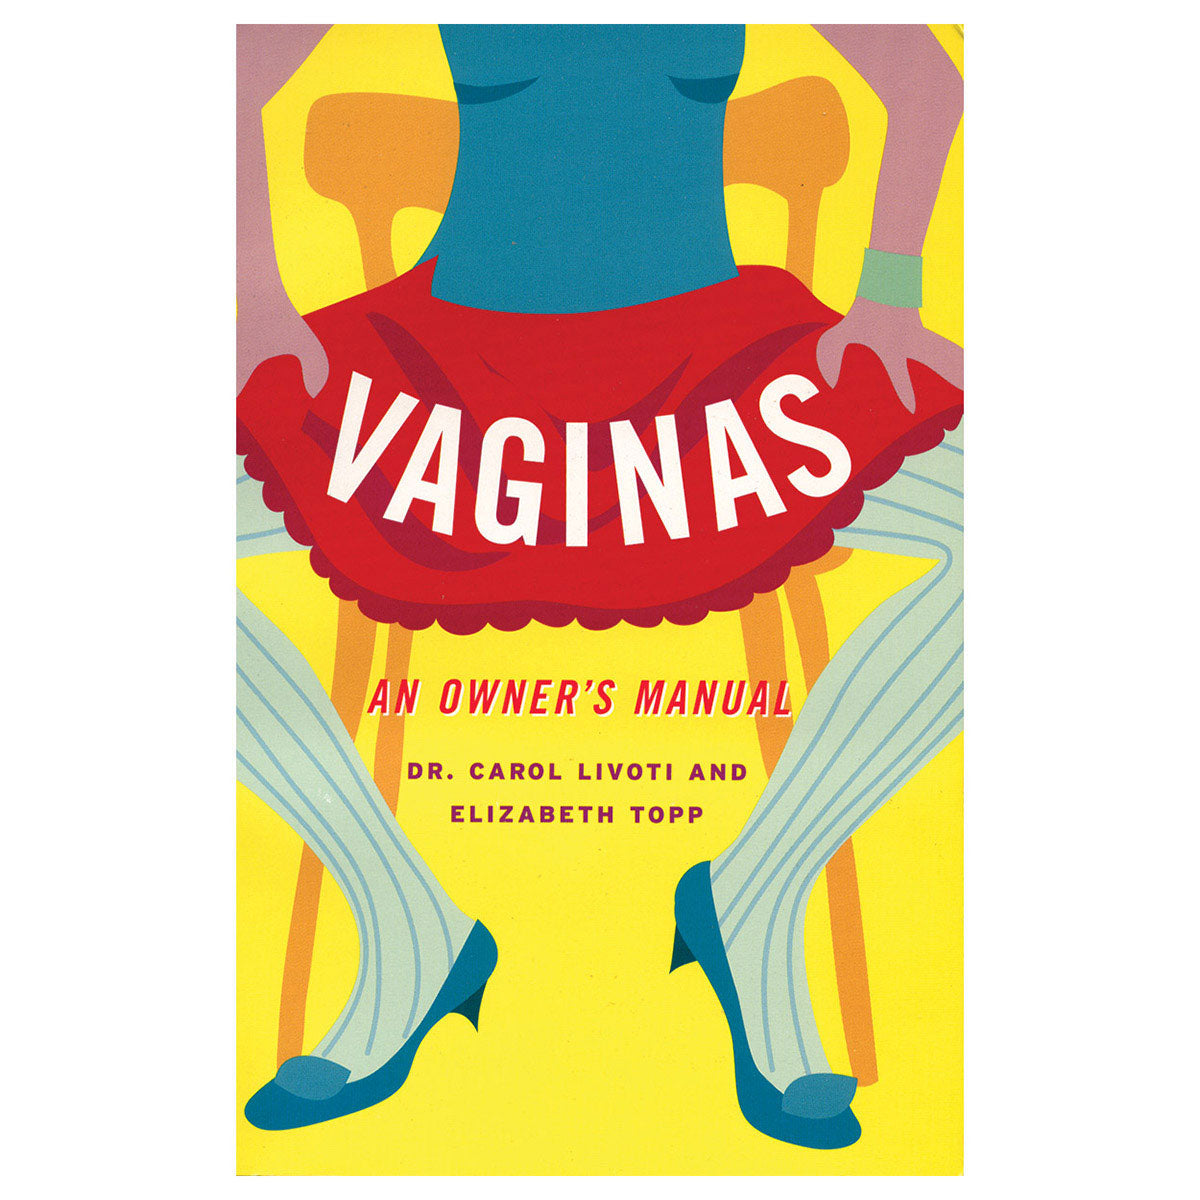 Vaginas: An Owner's Manual - Hatchette Book Group